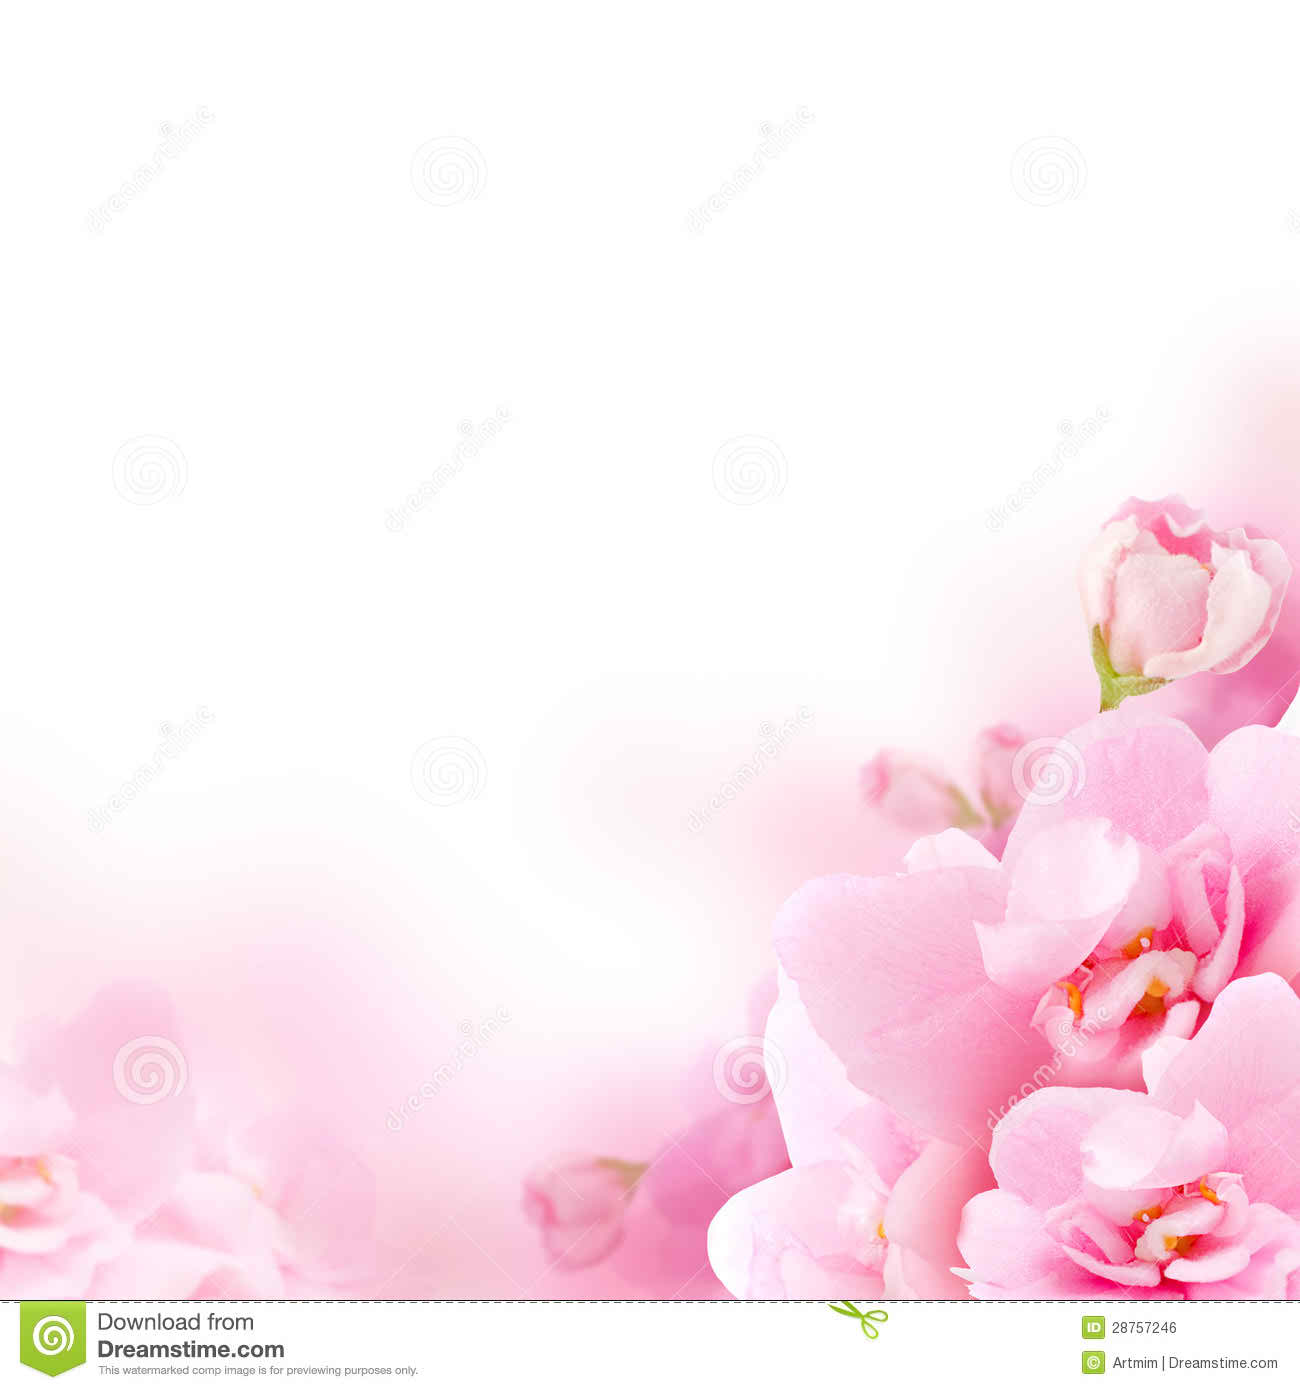 Free Download Background White Background Pink Flowers Background